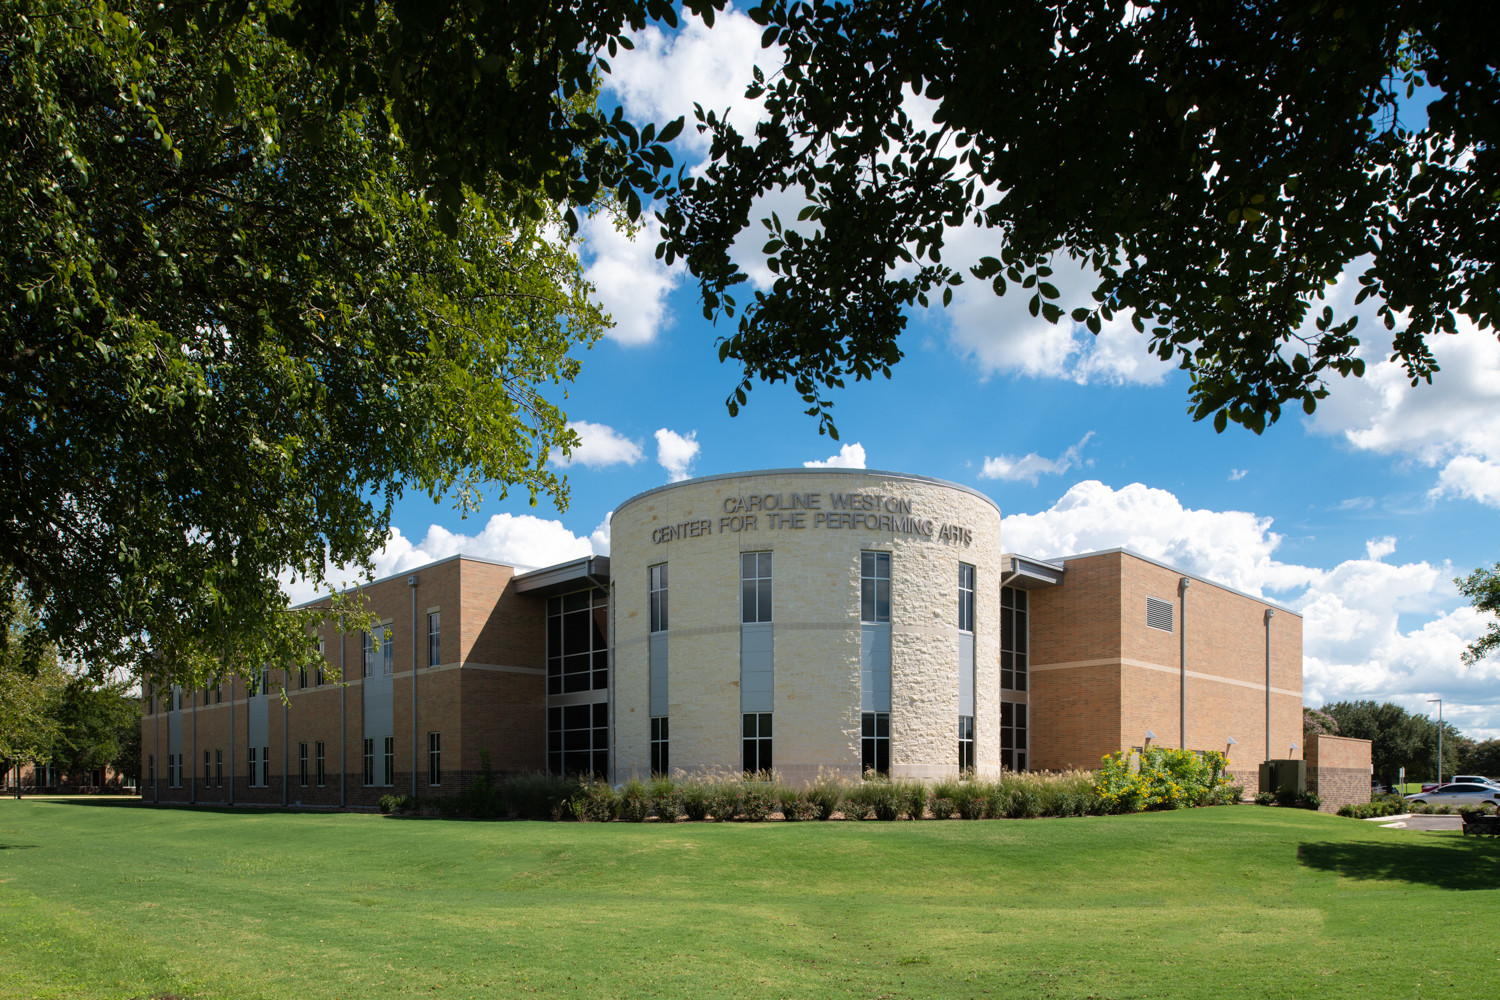 TLU Weston Center for the Performing Arts